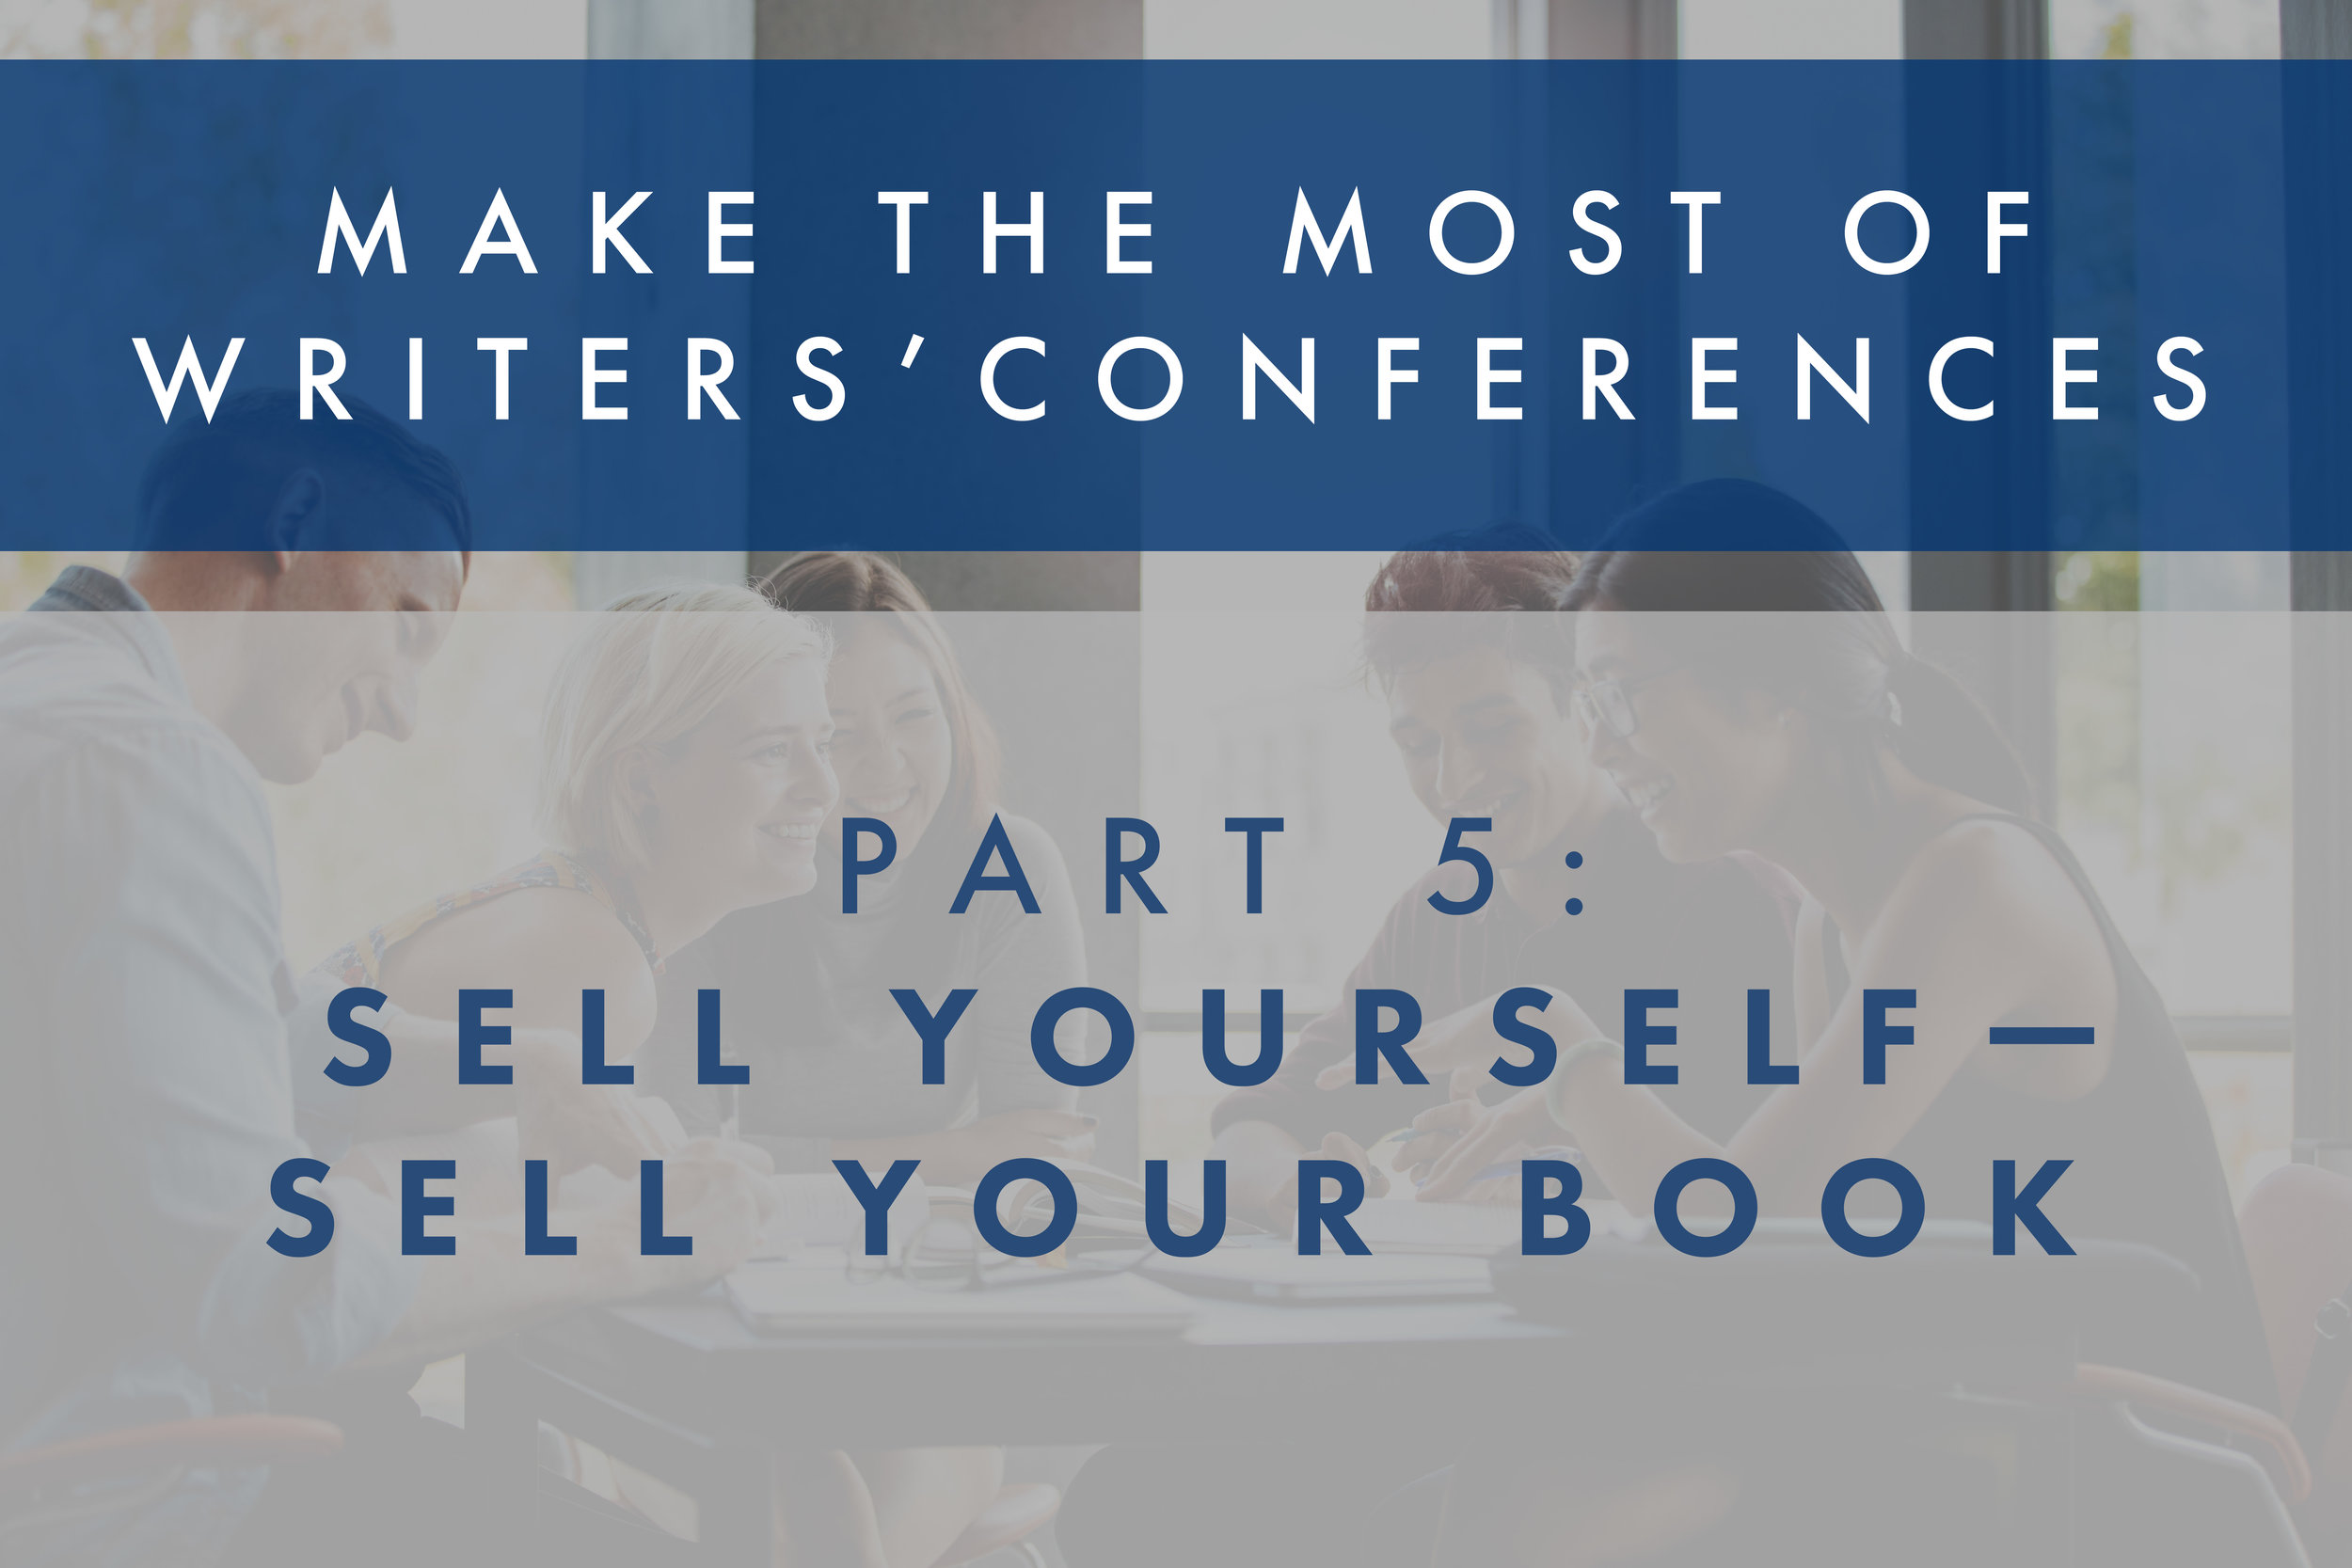 writers conference blog 5.jpg